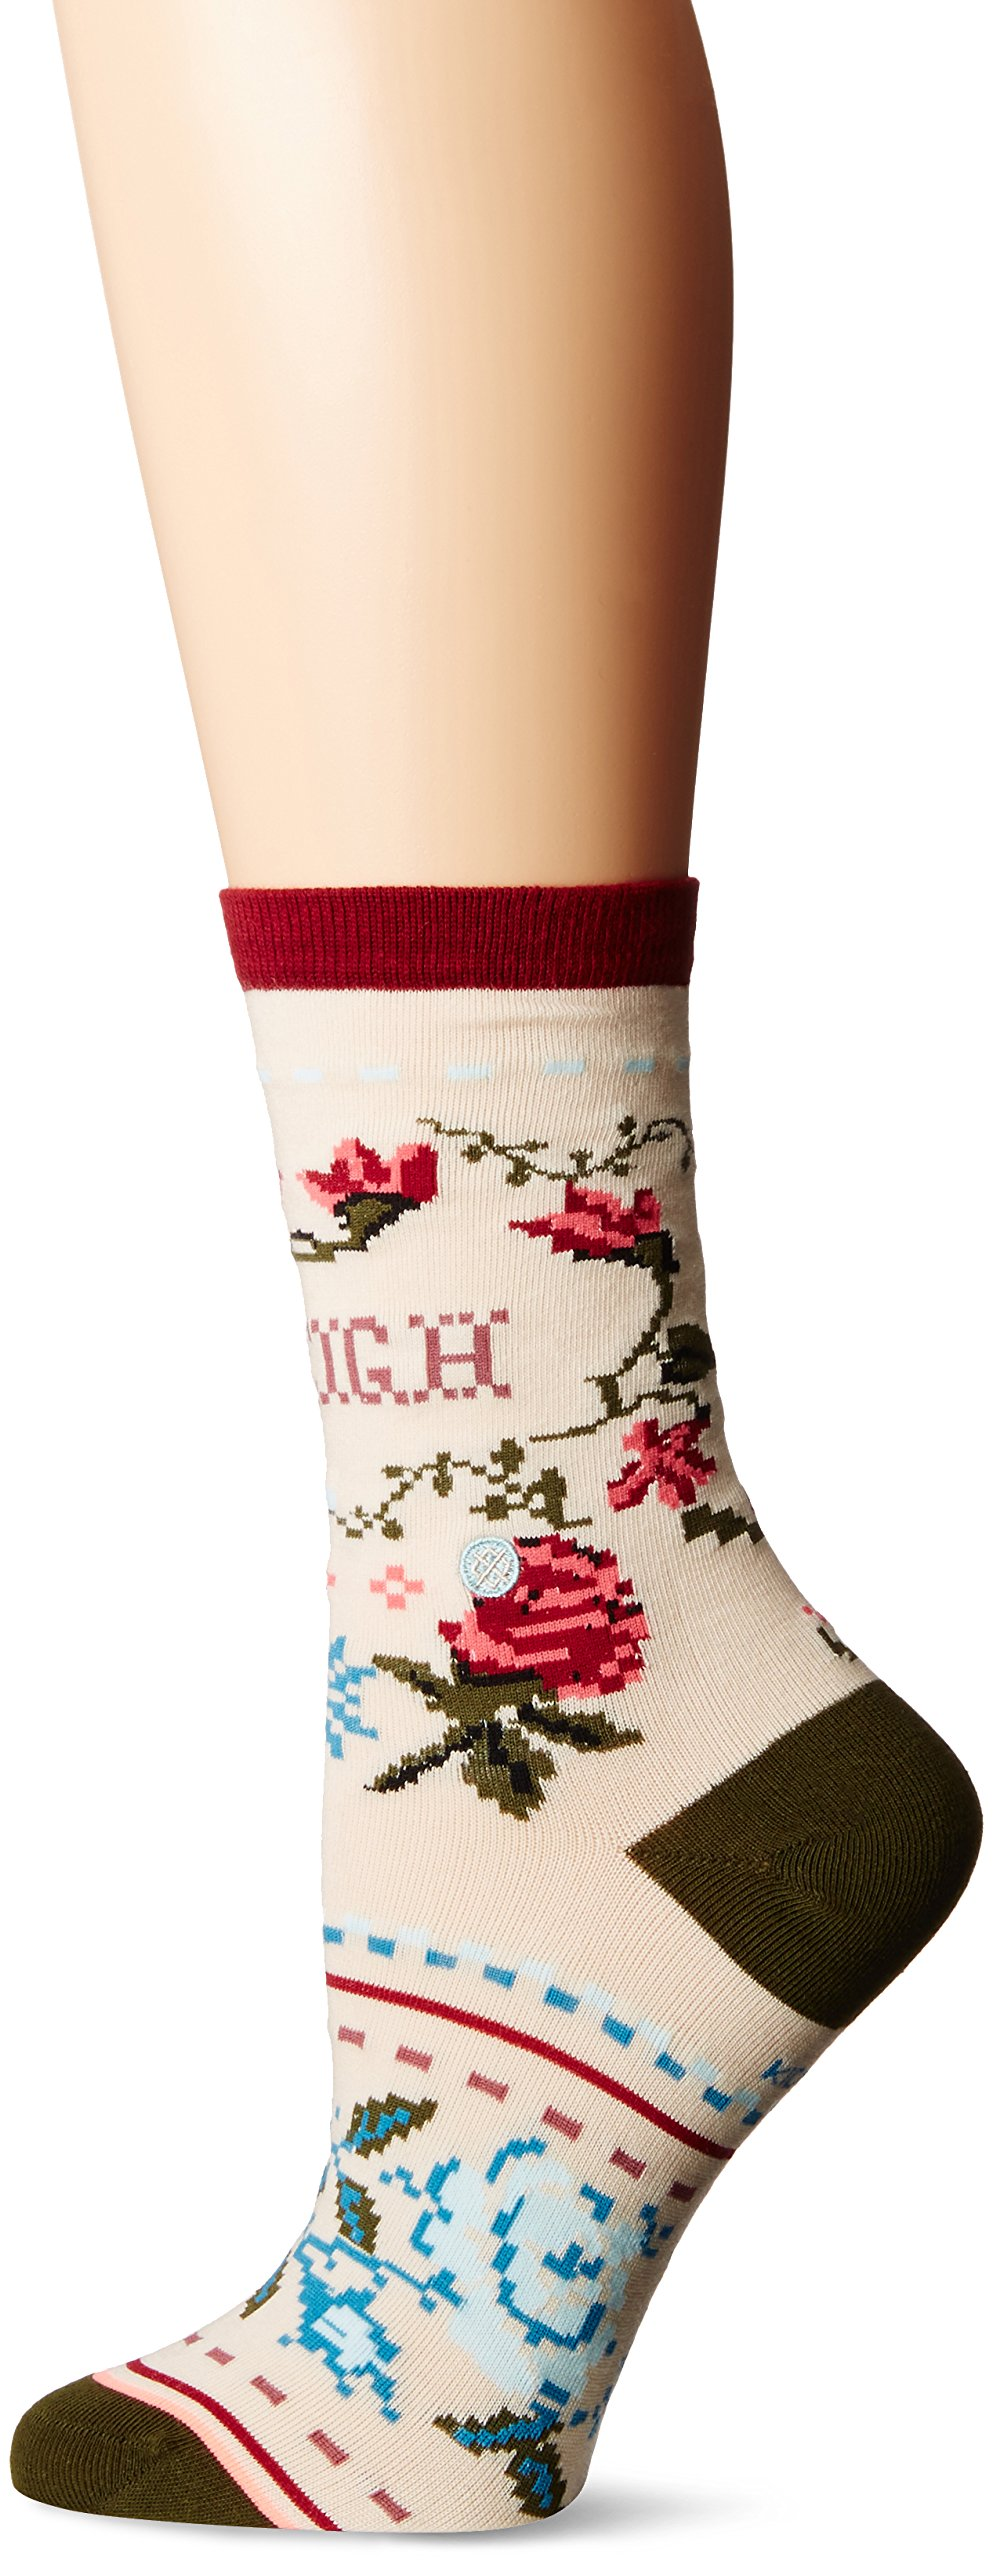 Stance Little Girls' Sleigh Ride Floral Snowflake Reinforced Toe Arch Support Crew Sock, Cream, L